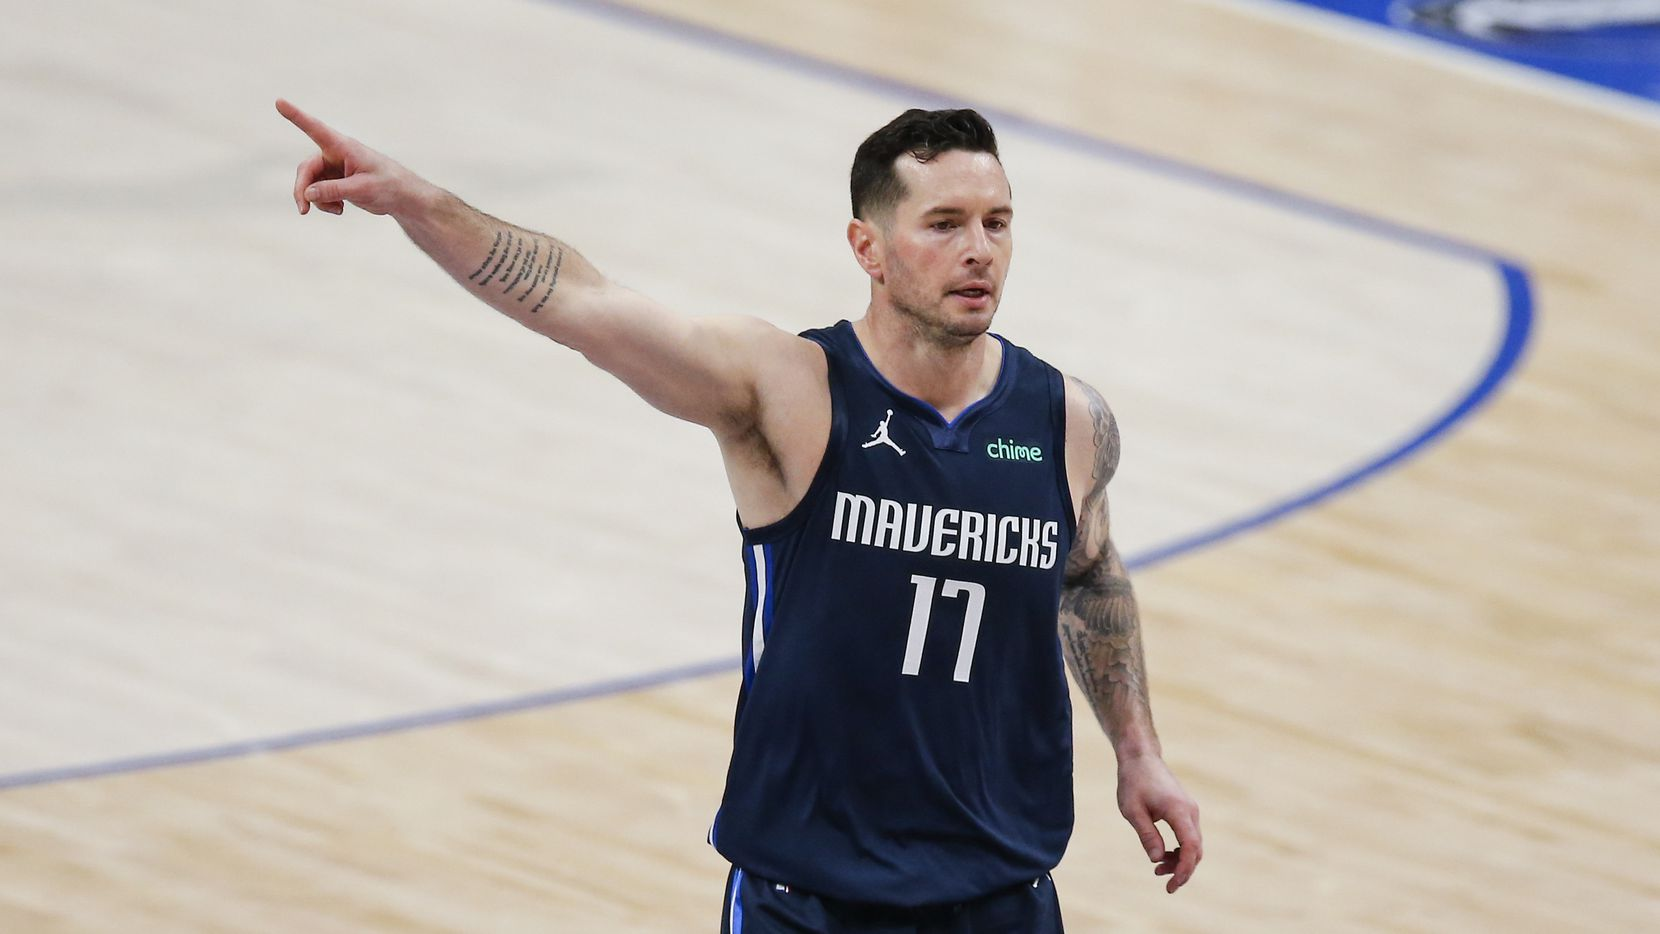 Dallas Mavericks guard JJ Redick (17) directs his teammates during the first half of an NBA basketball game against the Philadelphia 76ers in Dallas, Monday, April 12, 2021.